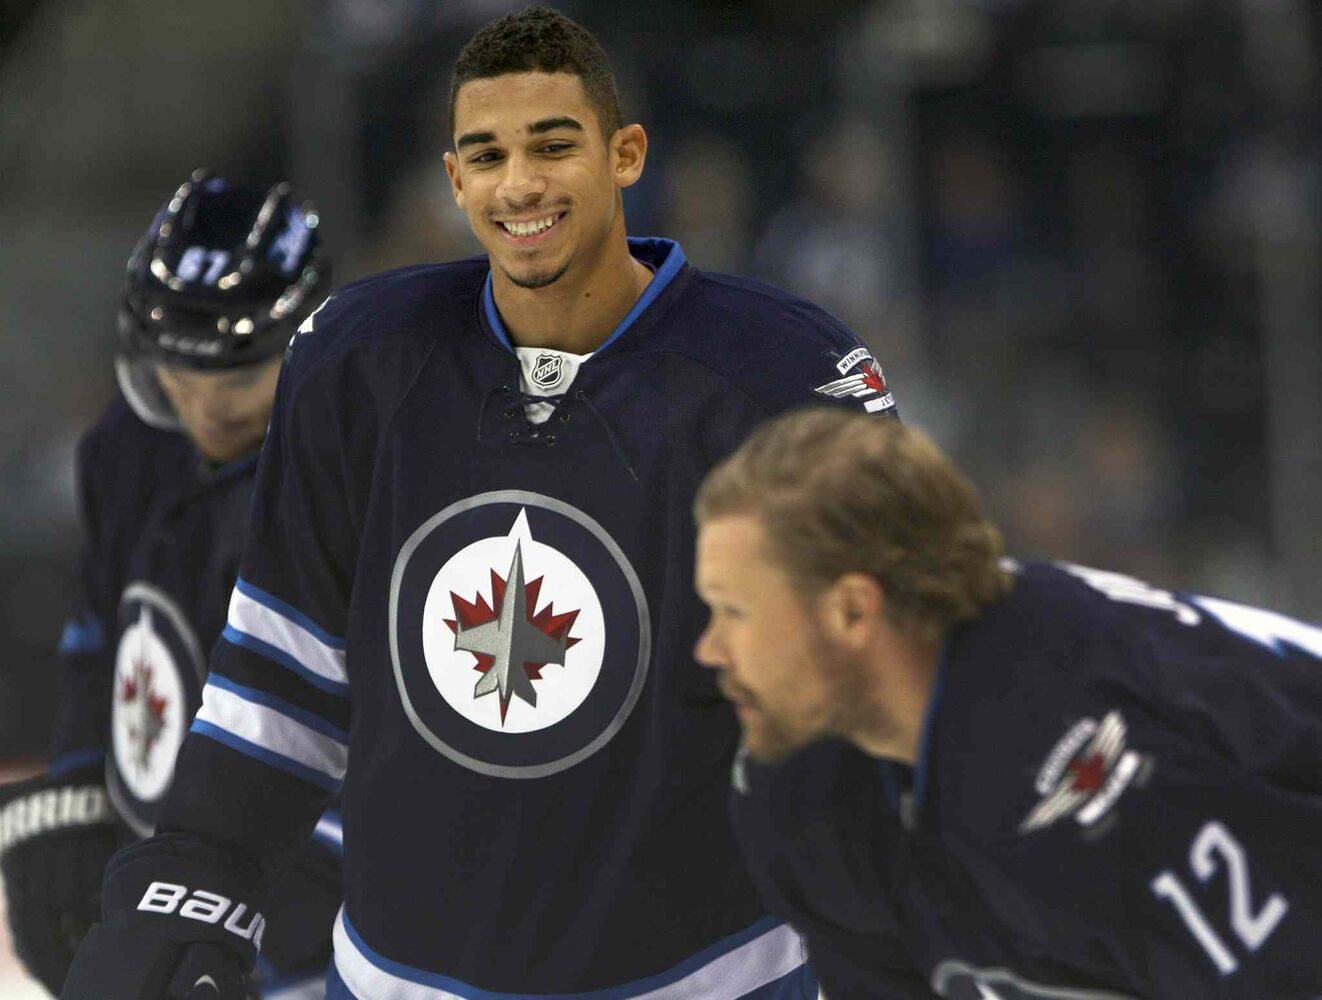 Winnipeg Jets winger Evander Kane (centre) smiles with teammates Michael Frolik (left) and Olli Jokinen during the pre-game skate prior to Friday's game against the Dallas Stars. (JOE BRYKSA / WINNIPEG FREE PRESS)